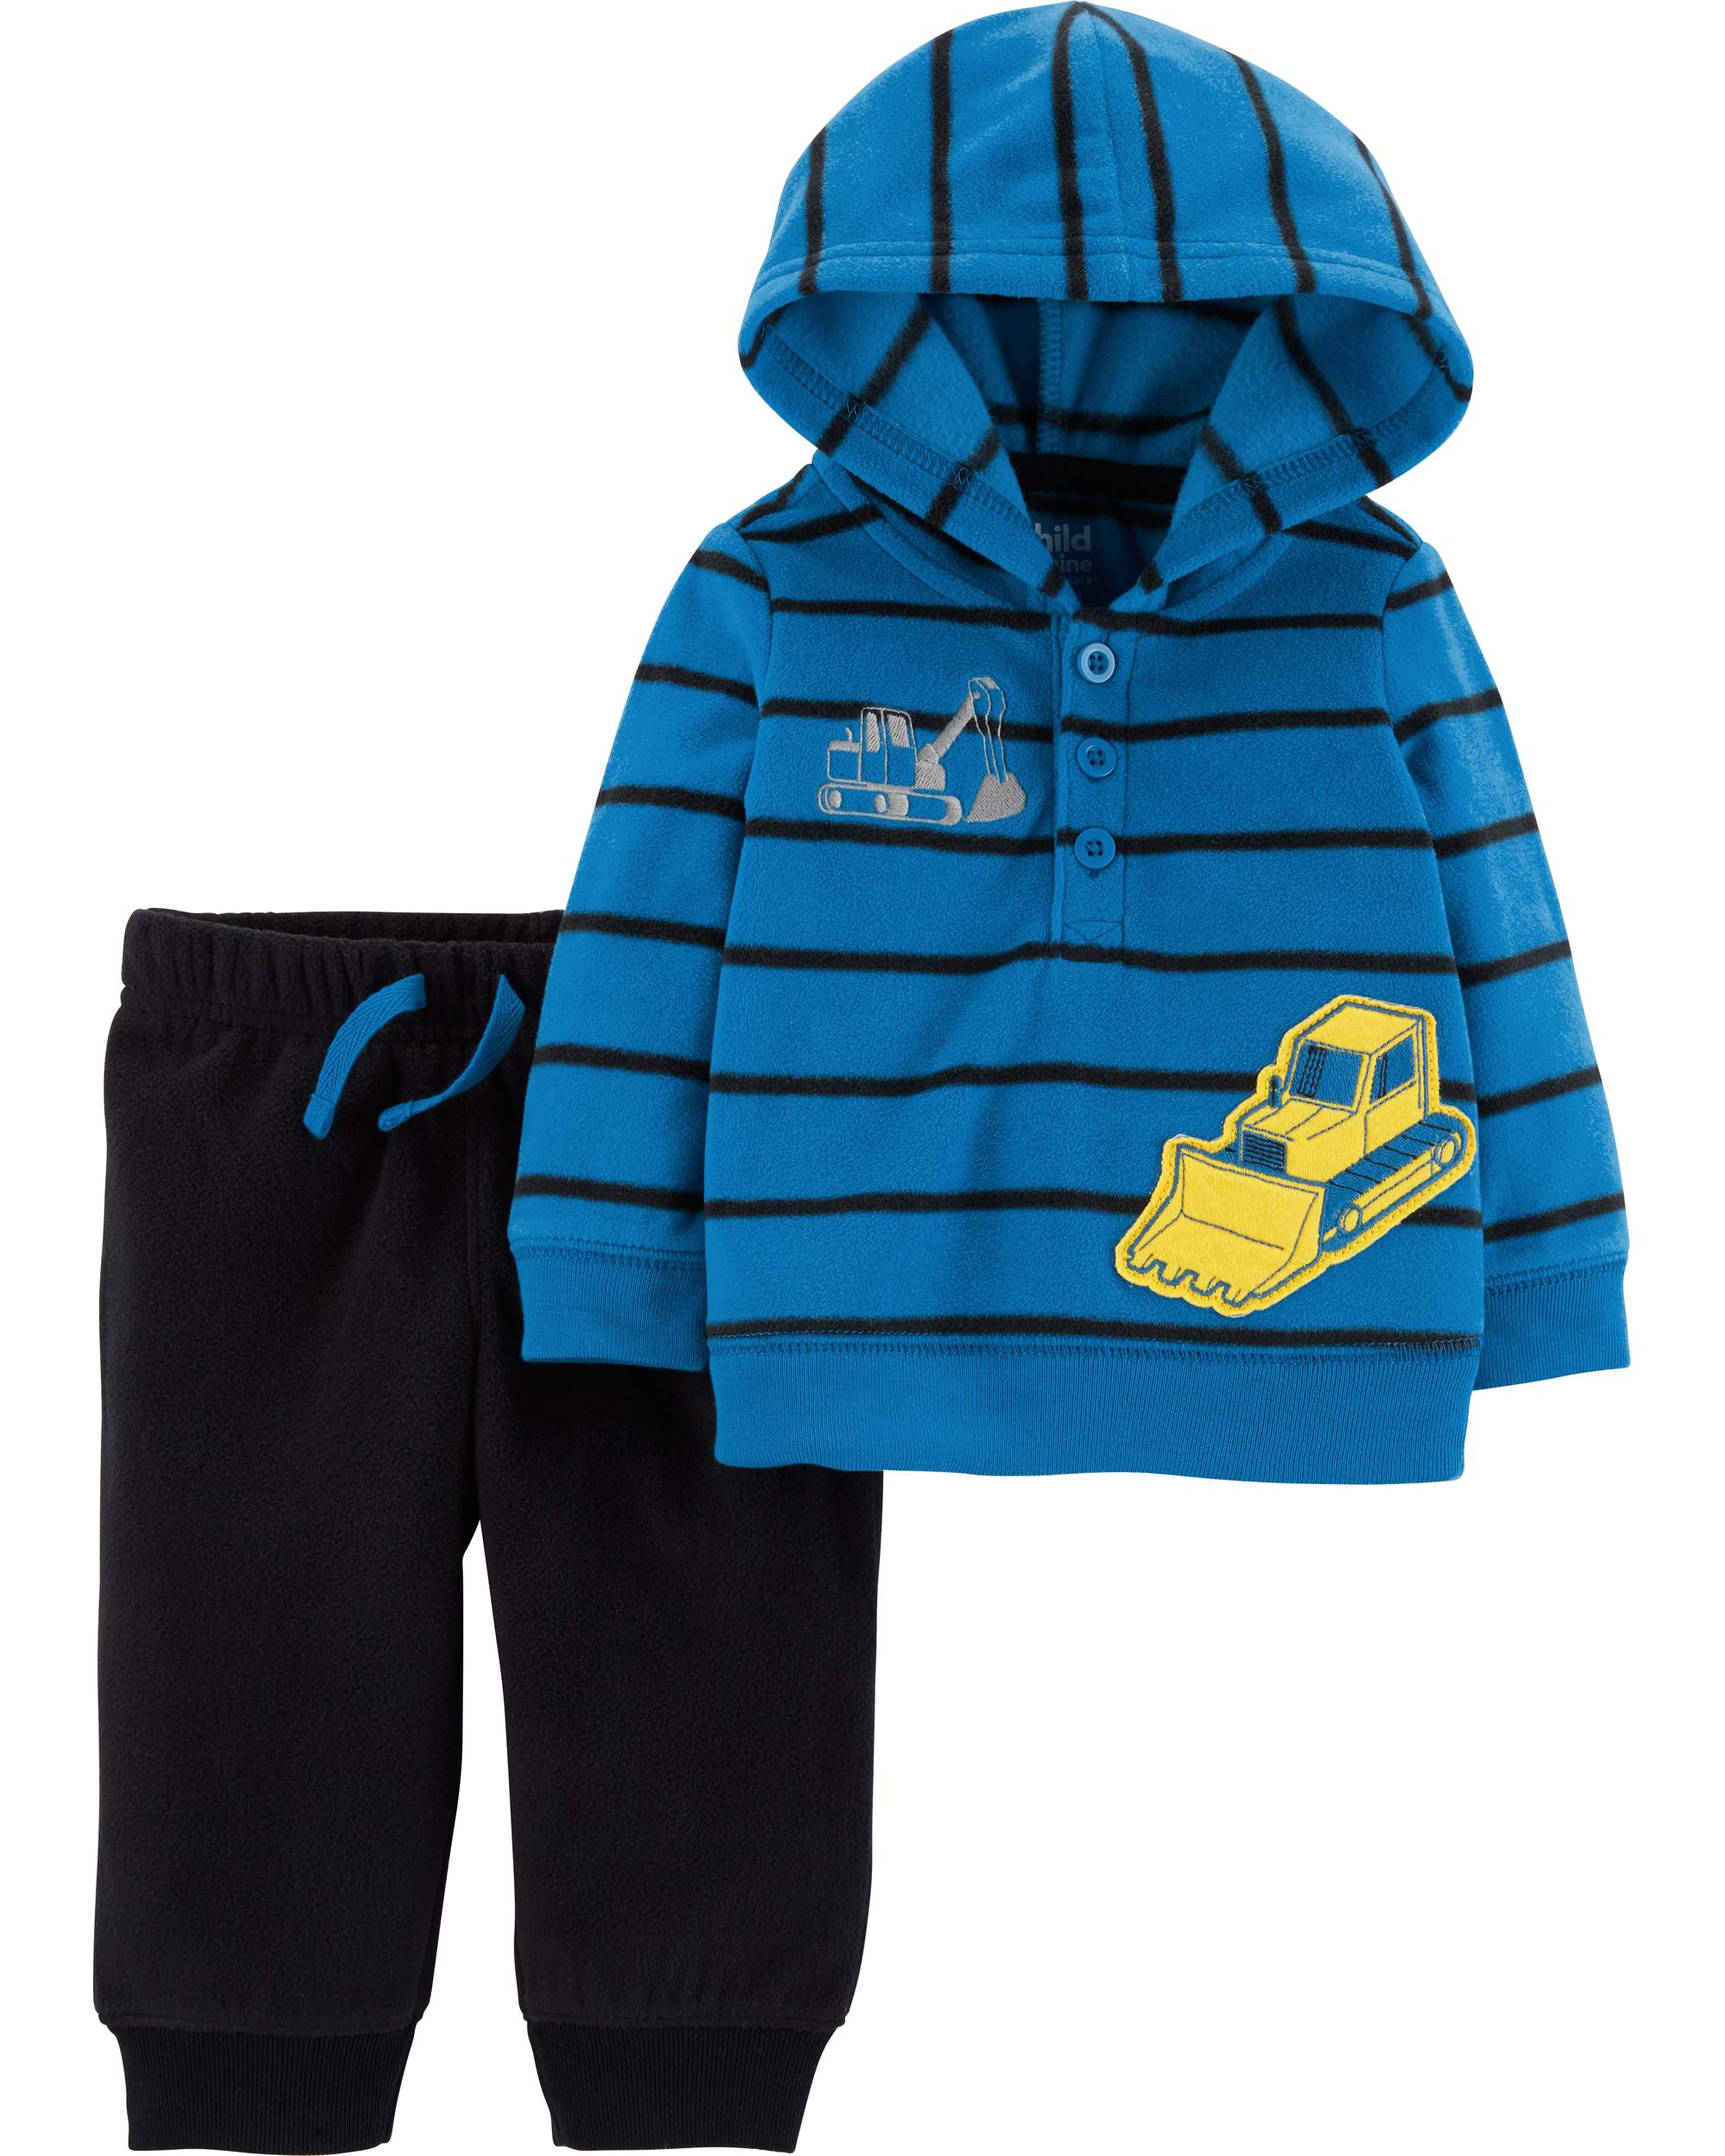 ba6d2294802f Child of Mine by Carter s - Hooded Long Sleeve T-Shirt   Jogger ...